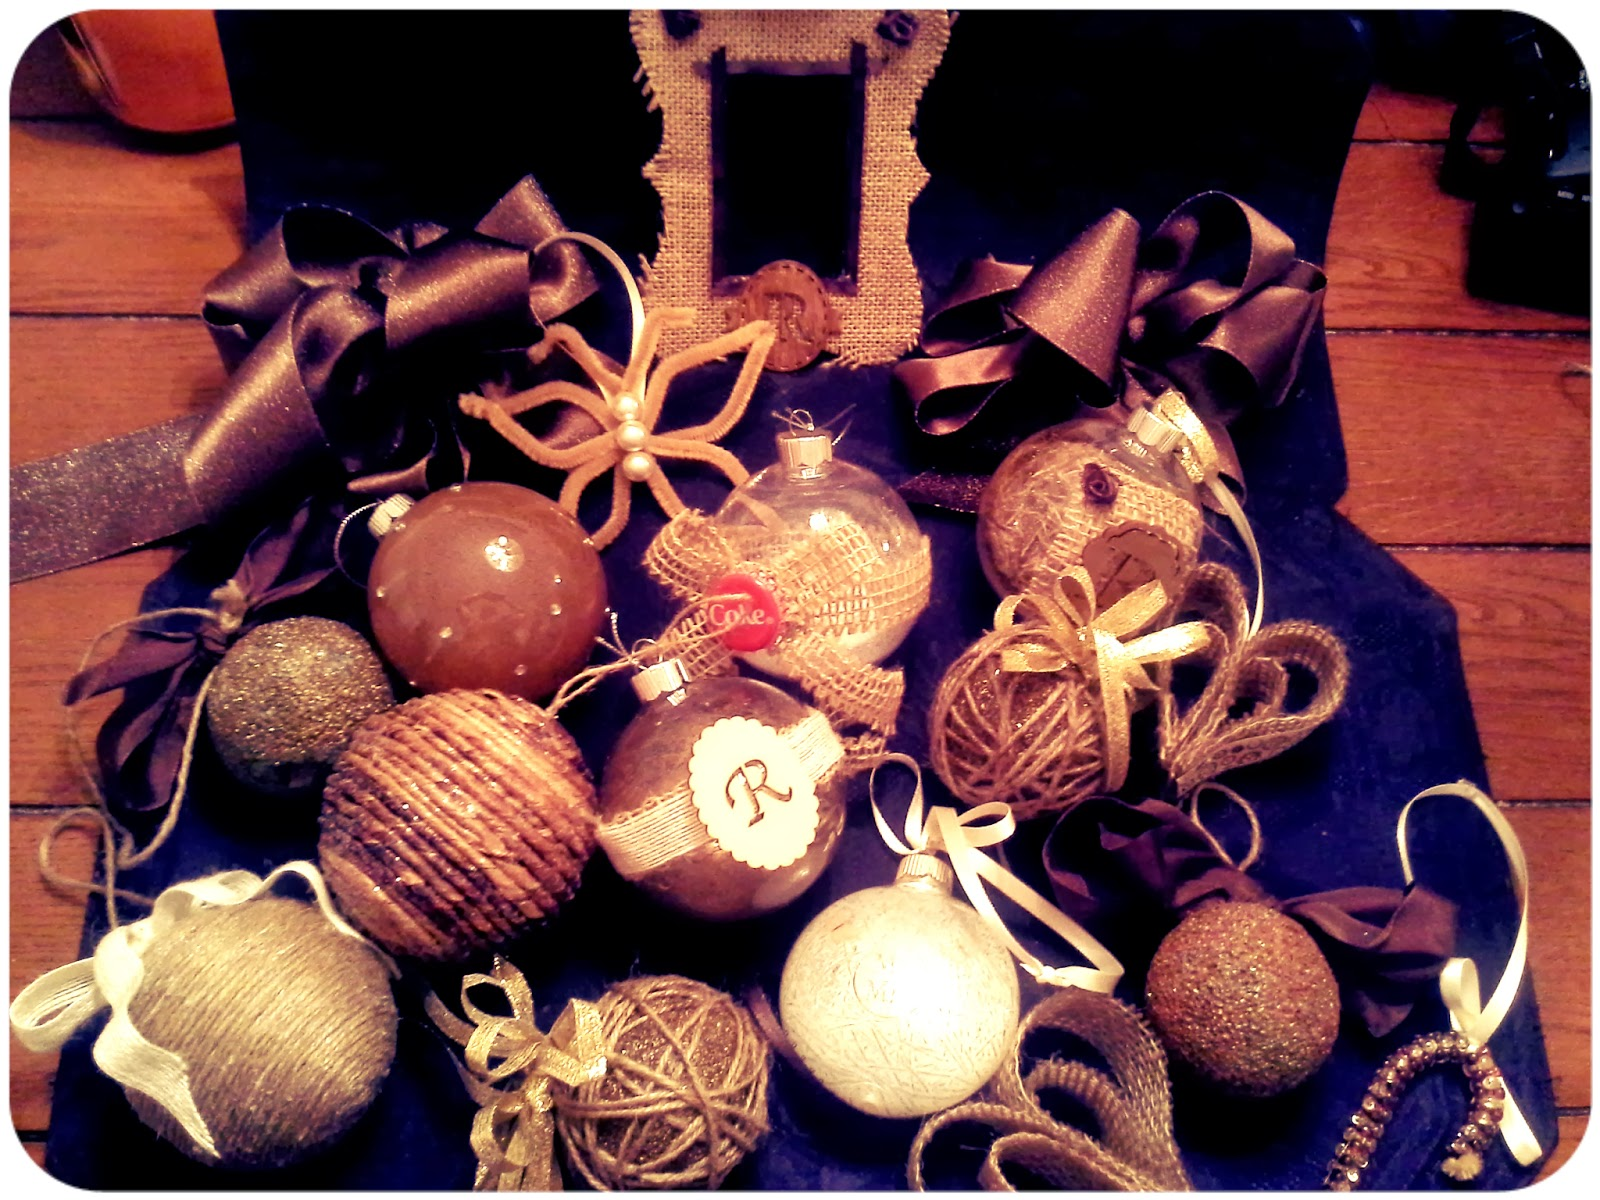 Pinterest-Inspired Rustic Christmas Ornament Making Party ...